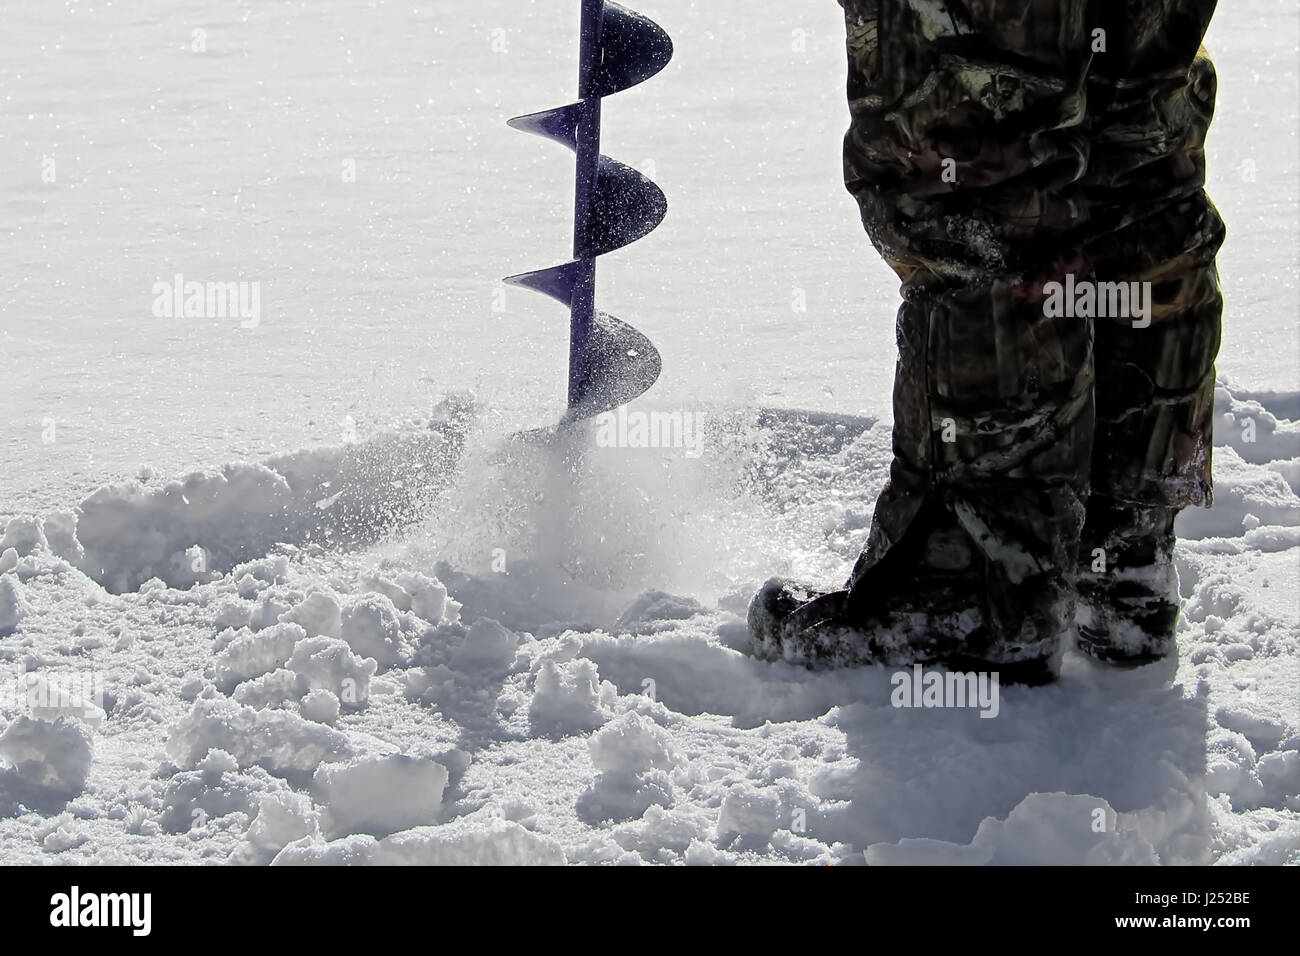 Side View of Drilling a Hole for Ice Fishing. - Stock Image